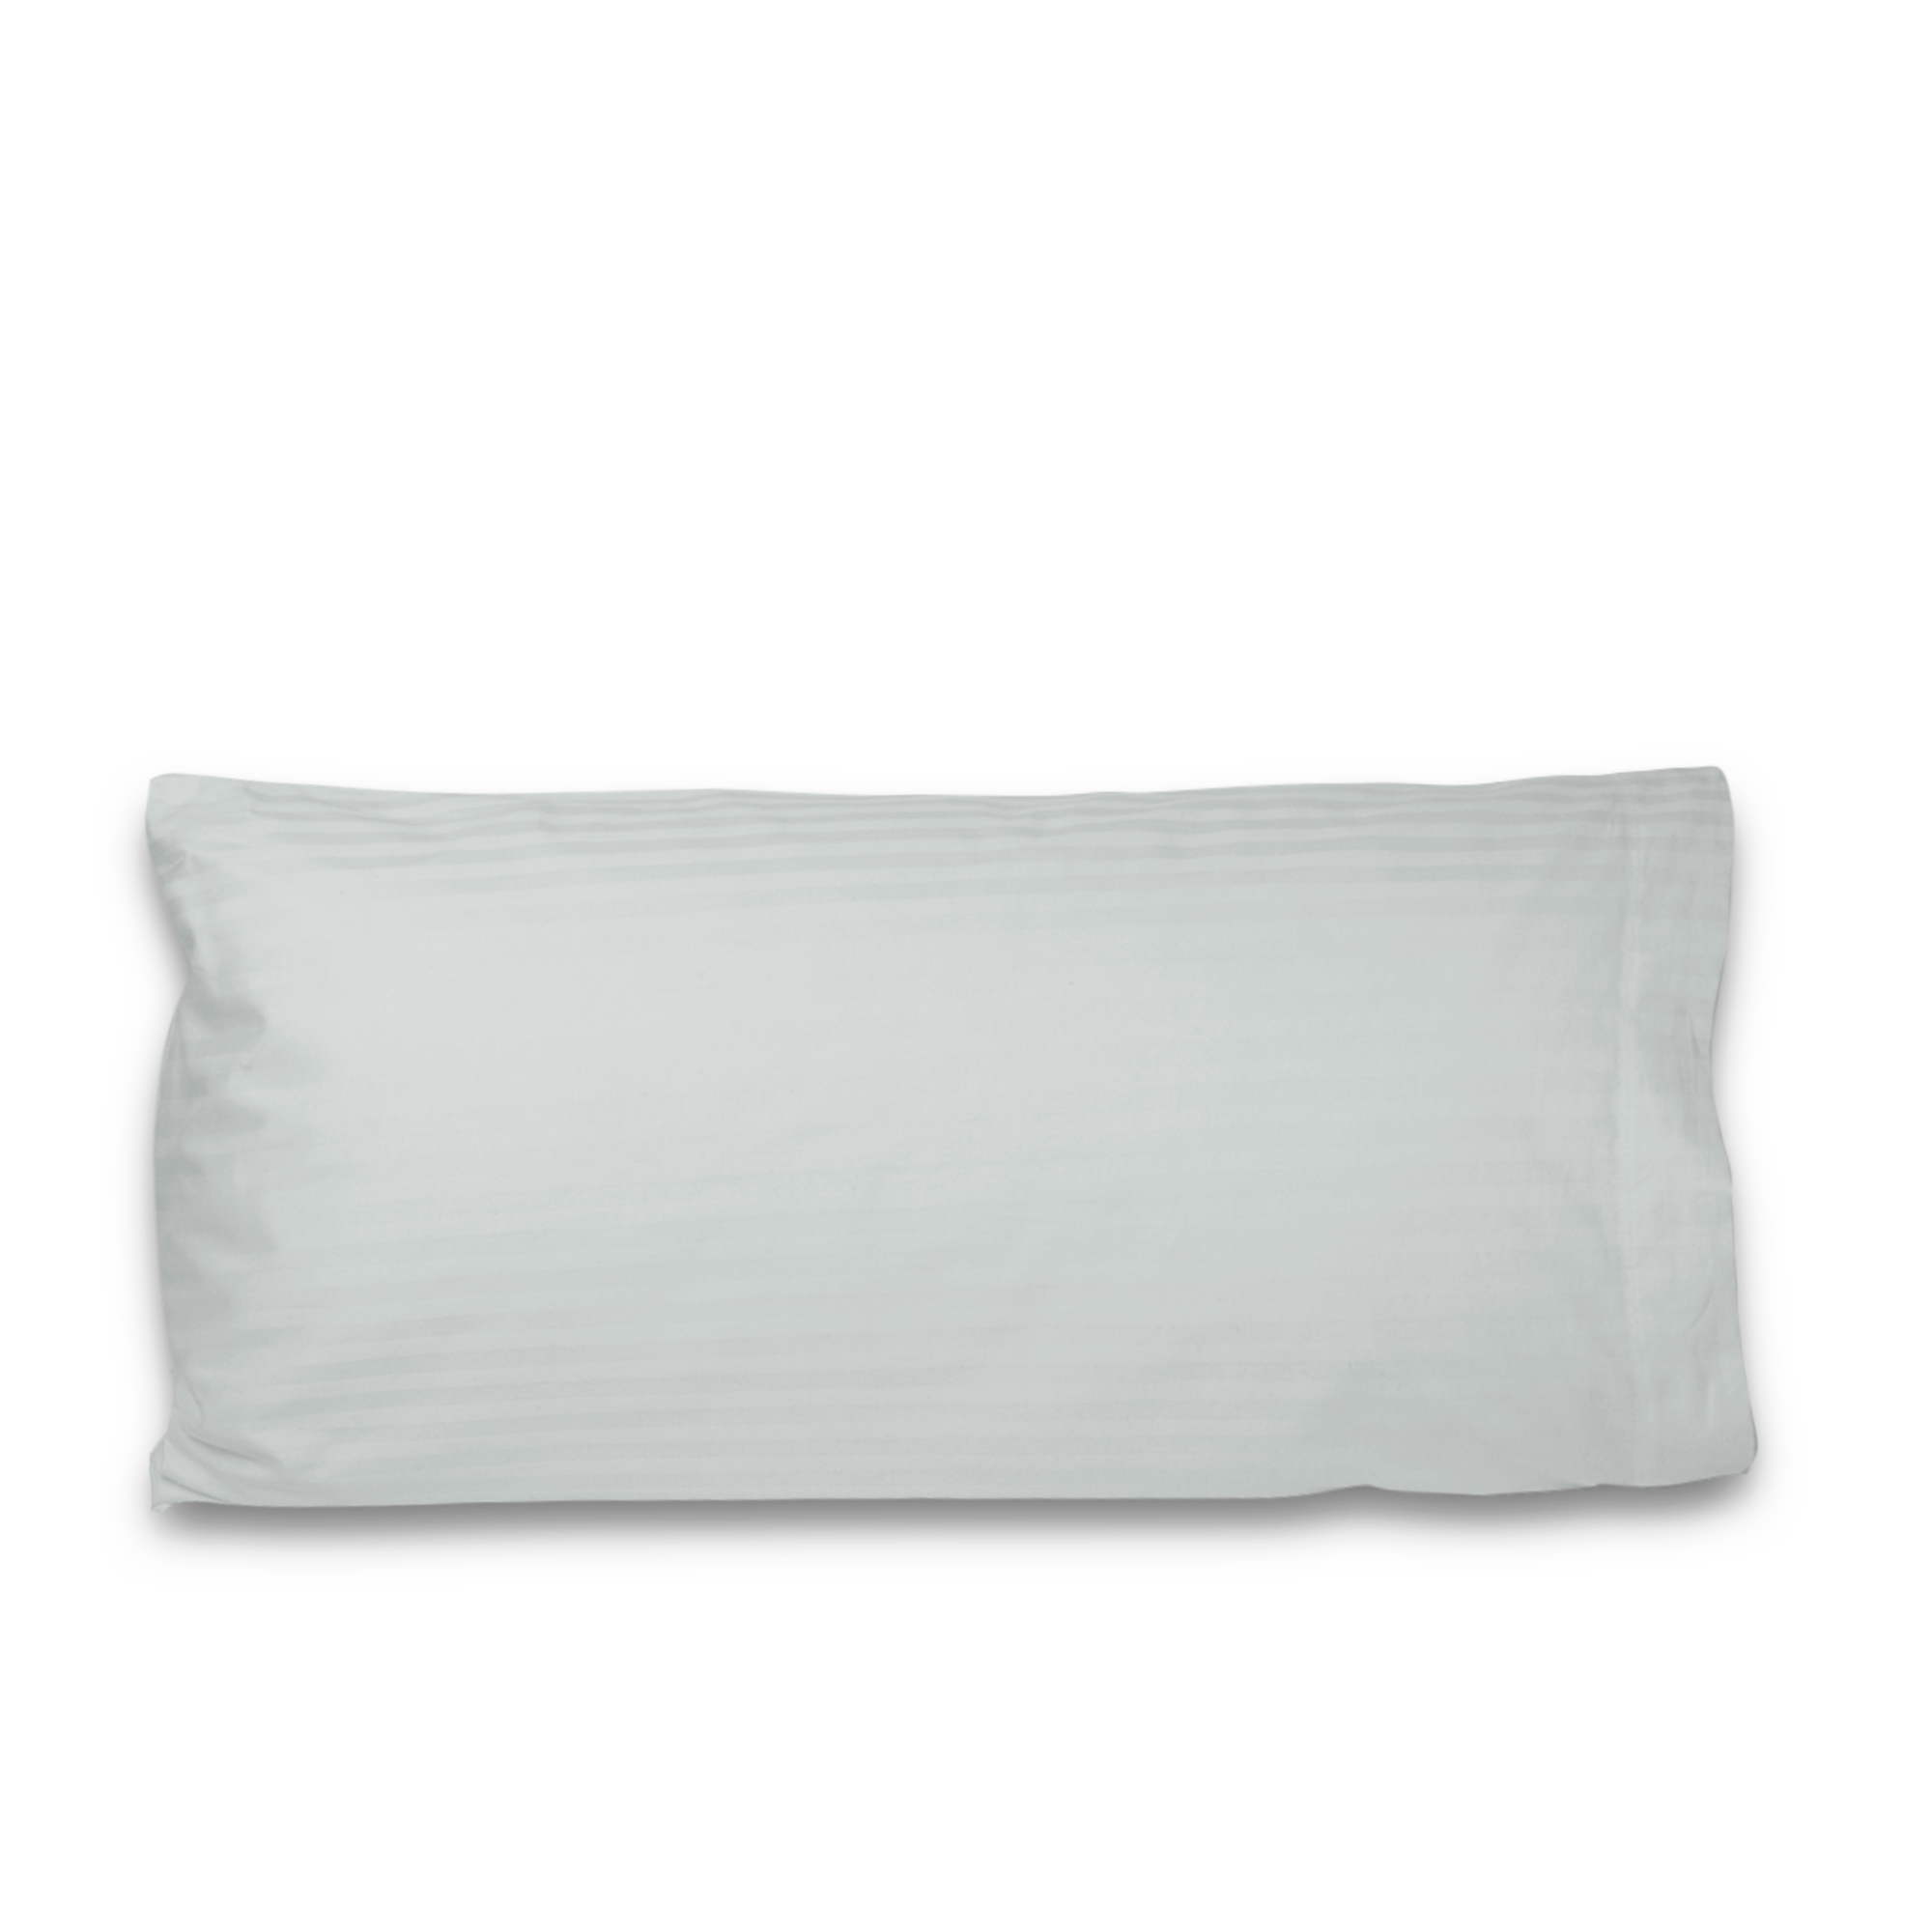 luxury hotel collection thick striped pillow cases queen size white set of 2